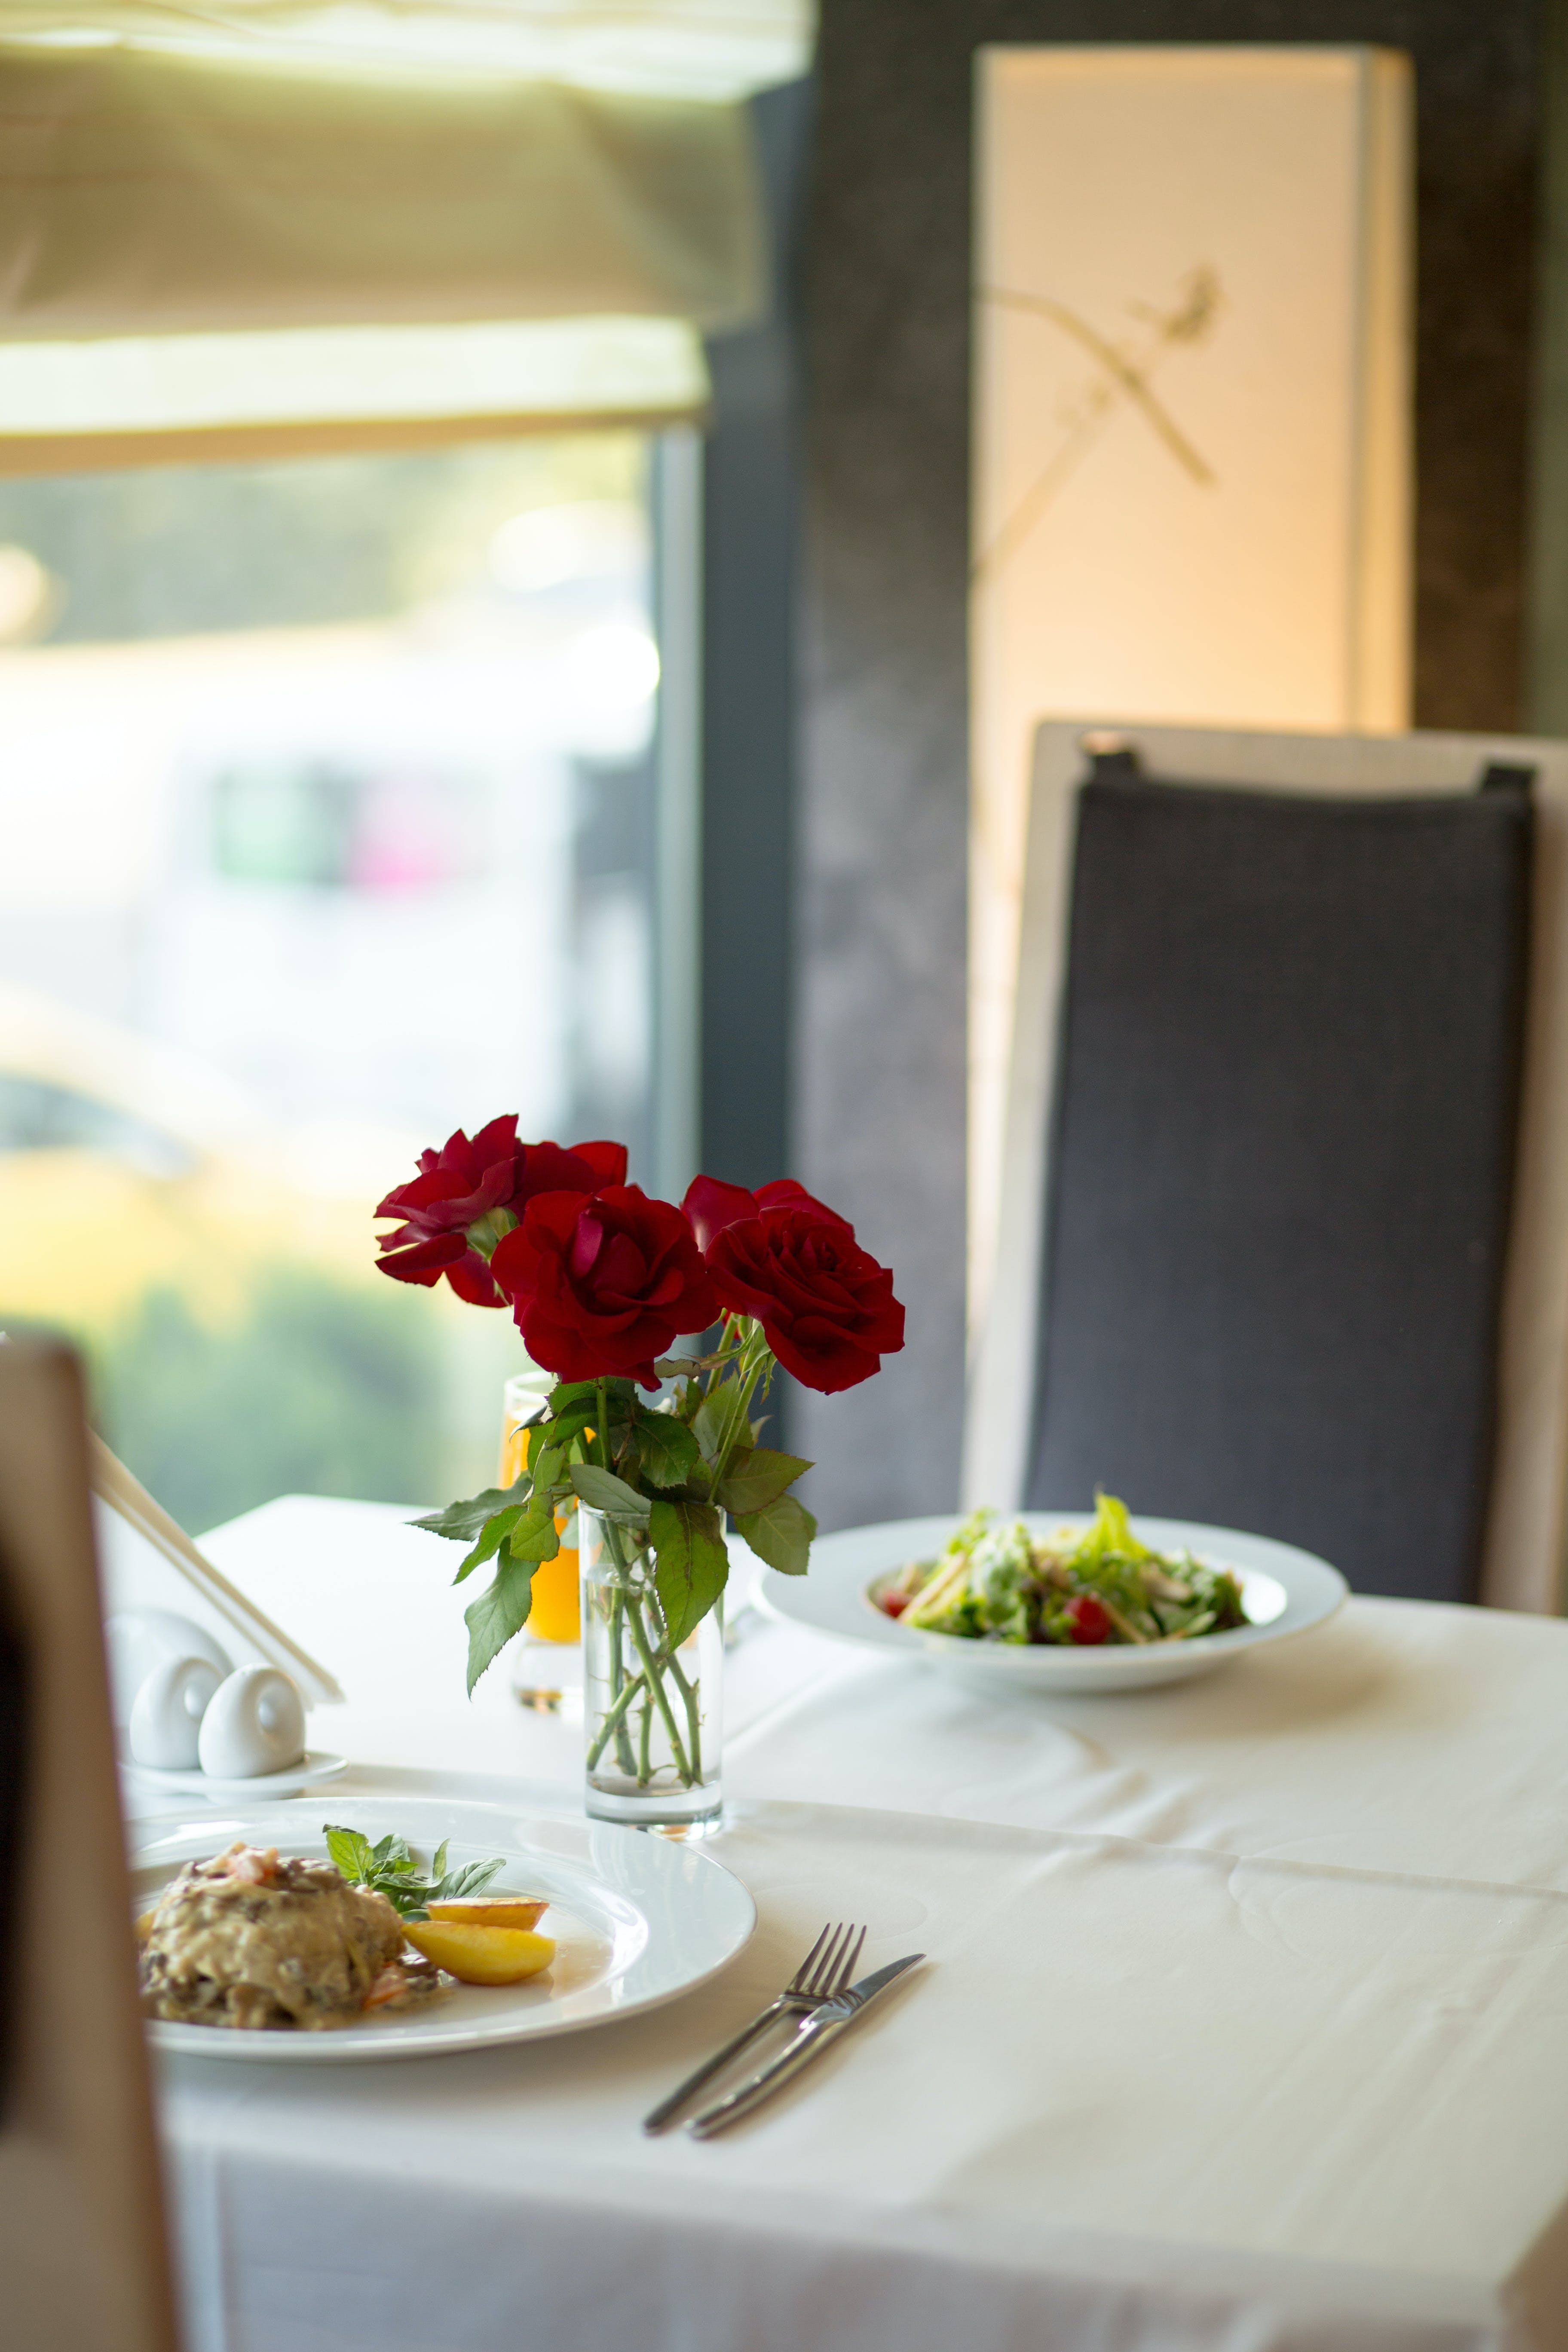 Close-up Photo of Three Red Roses in Clear Vase Centerpiece